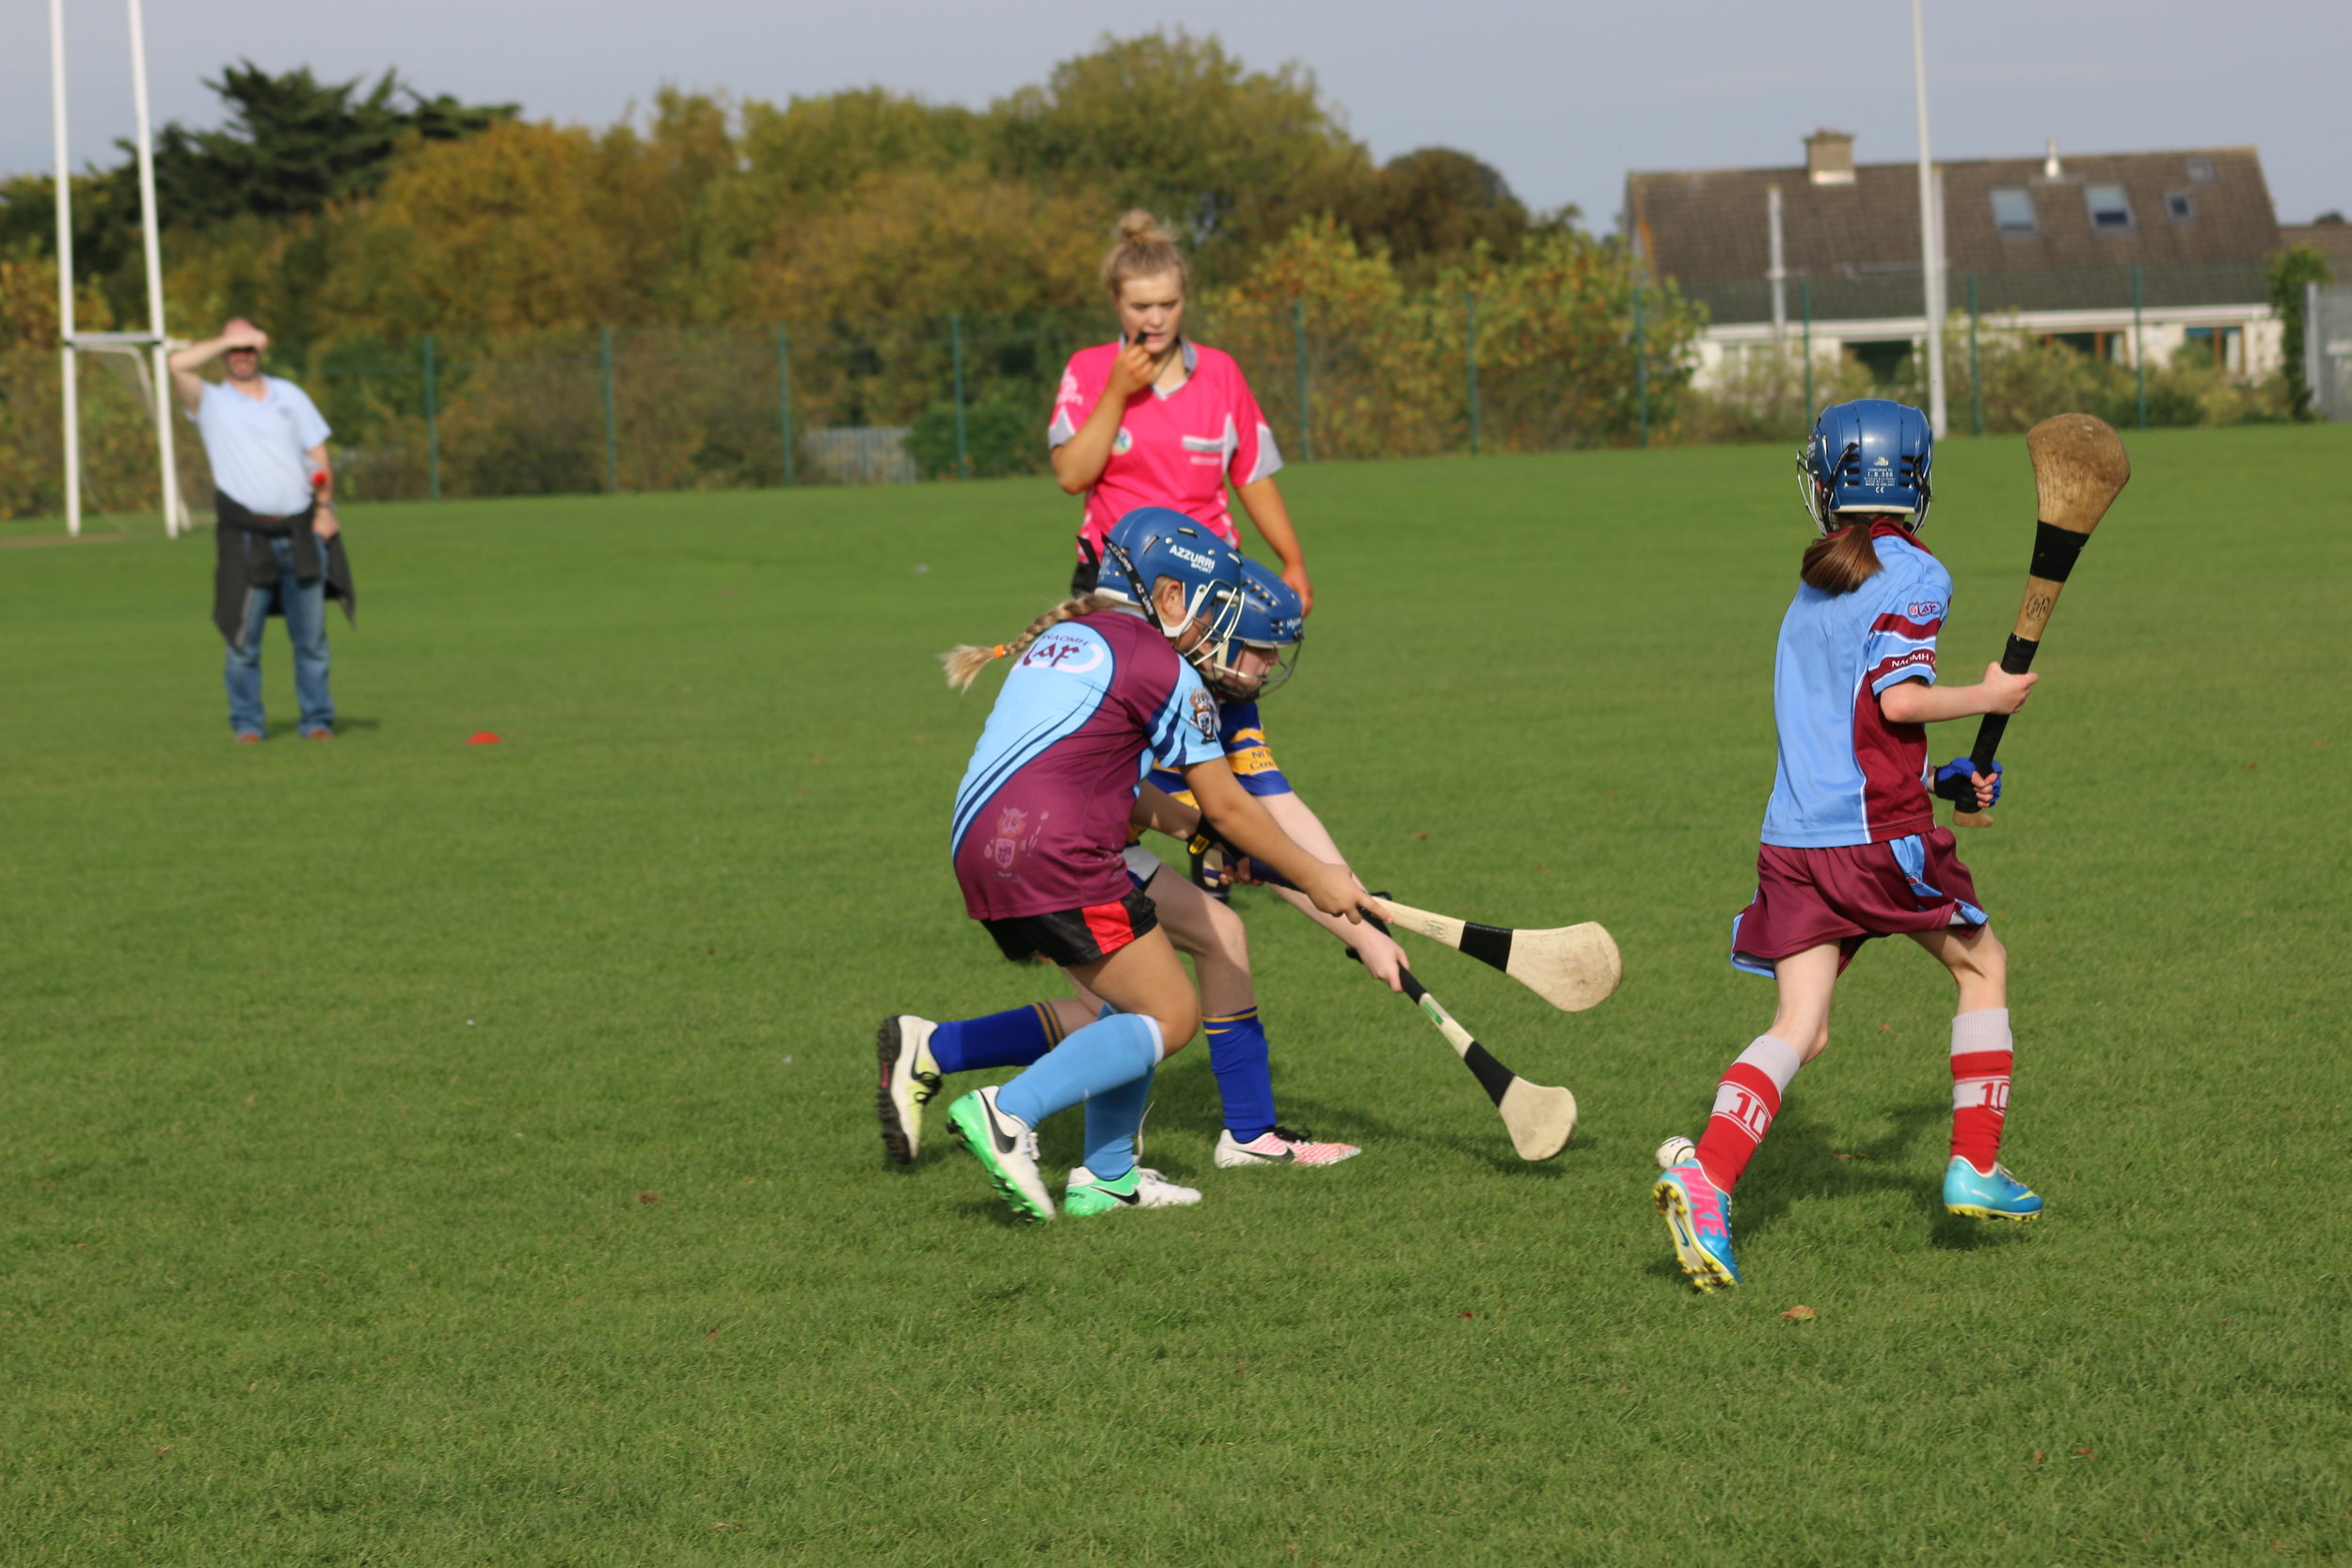 I have loved playing Camogie and GAA Football in Ireland